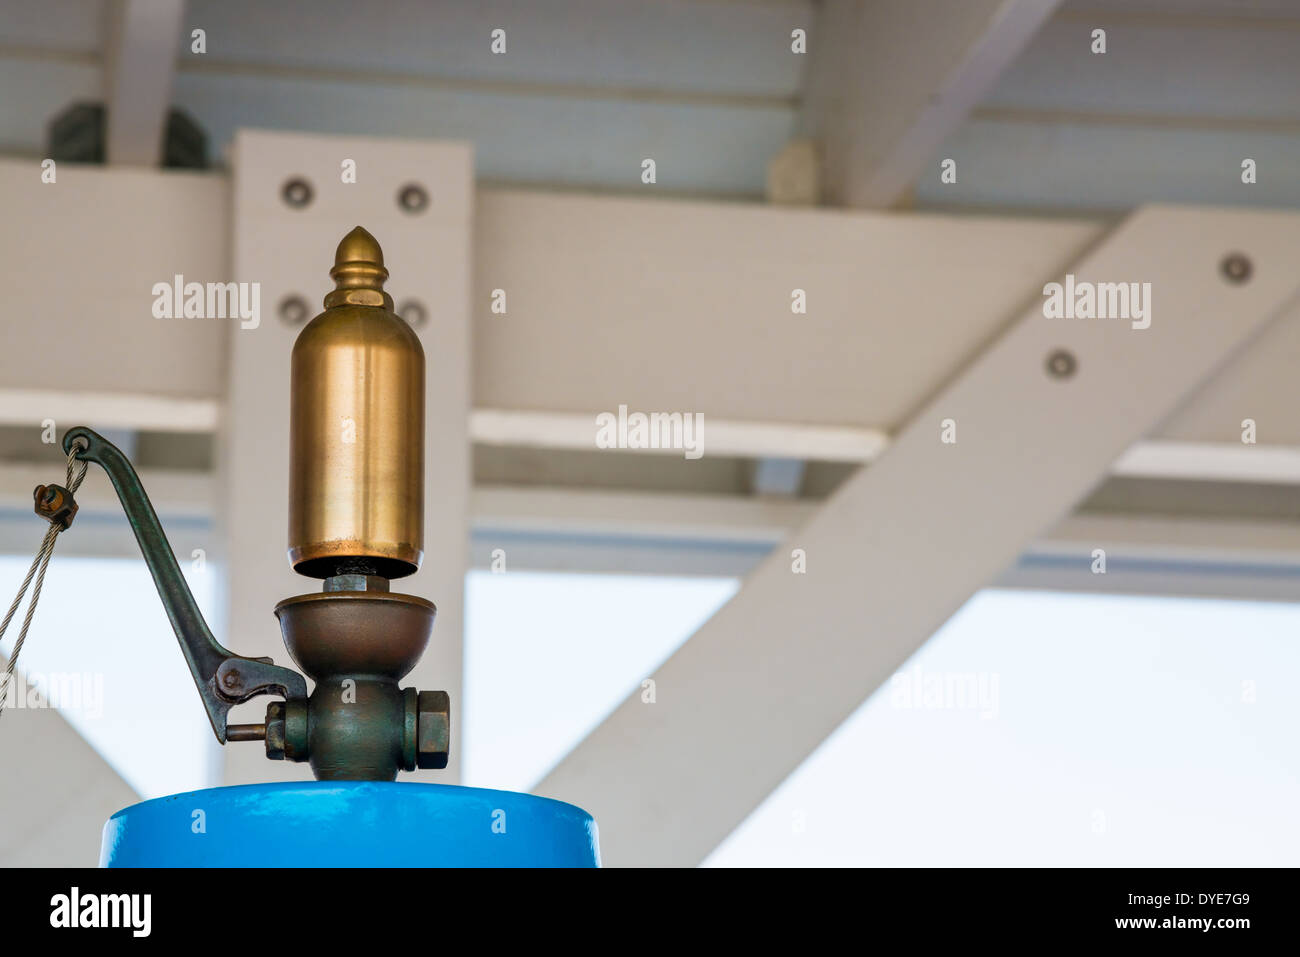 Old Steam Whistle Stock Photos & Old Steam Whistle Stock Images - Alamy